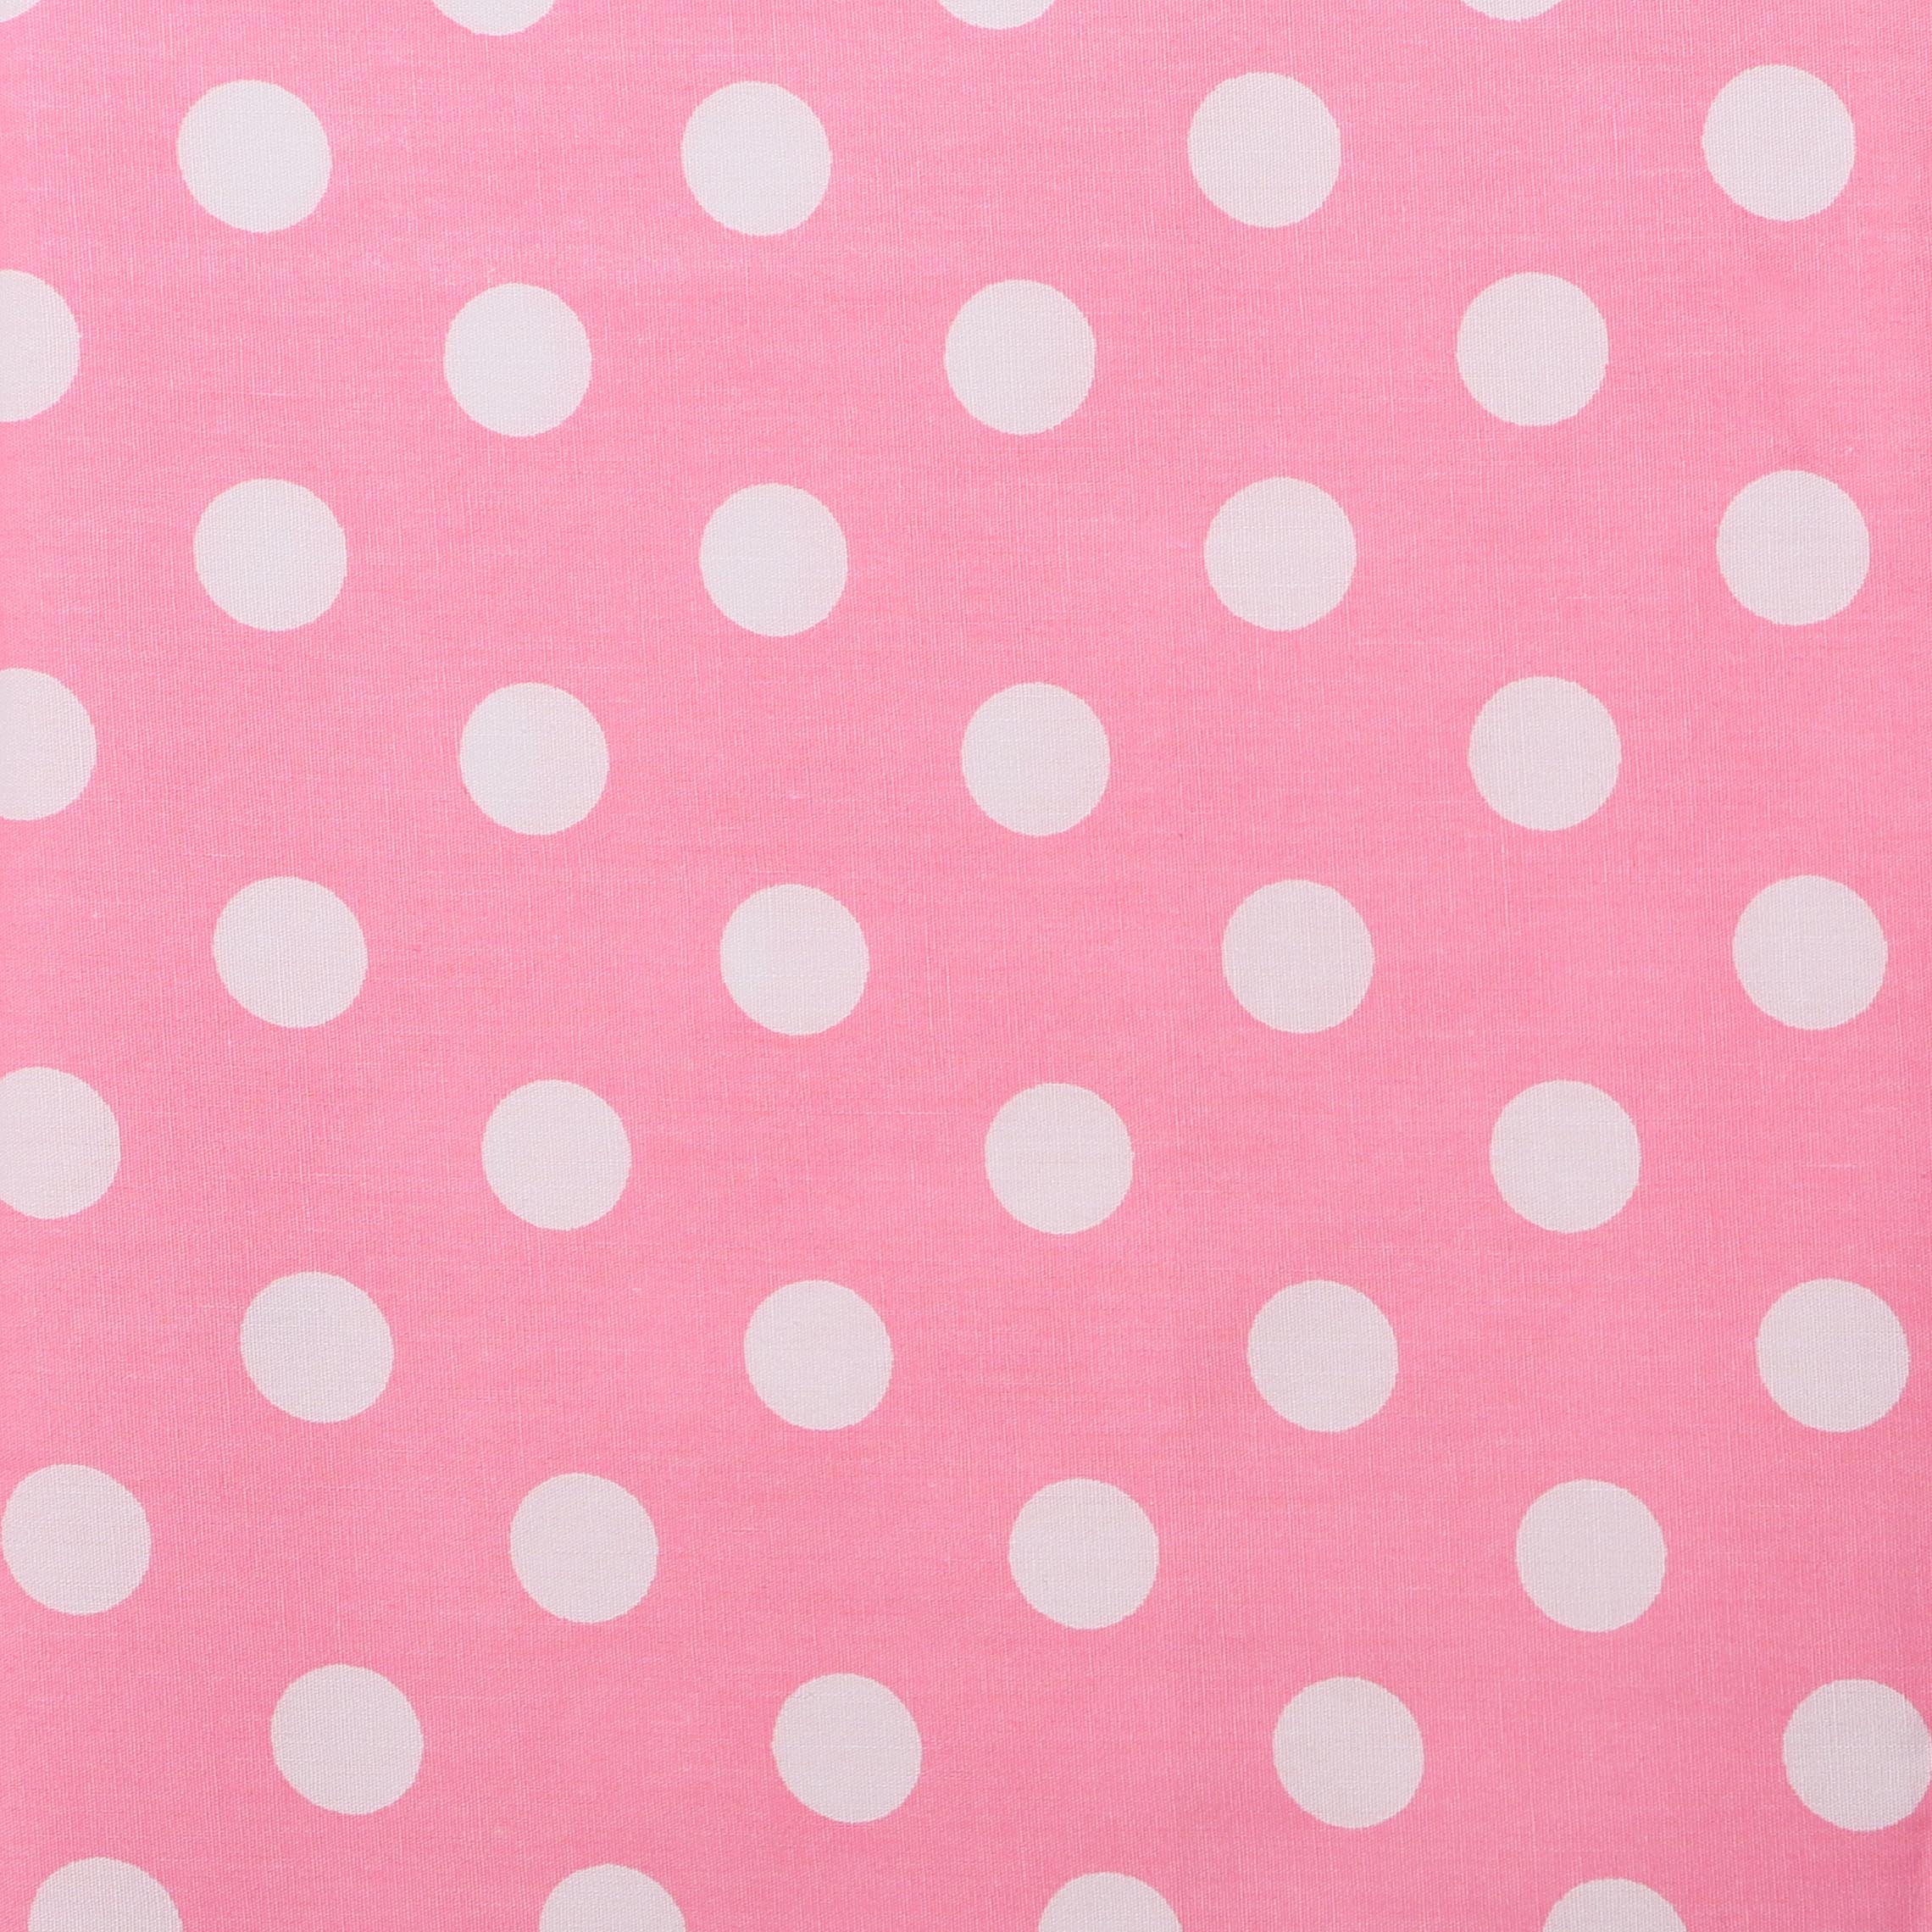 Buy cotton flannel fabrics from china rayon fabric for Flannel fabric